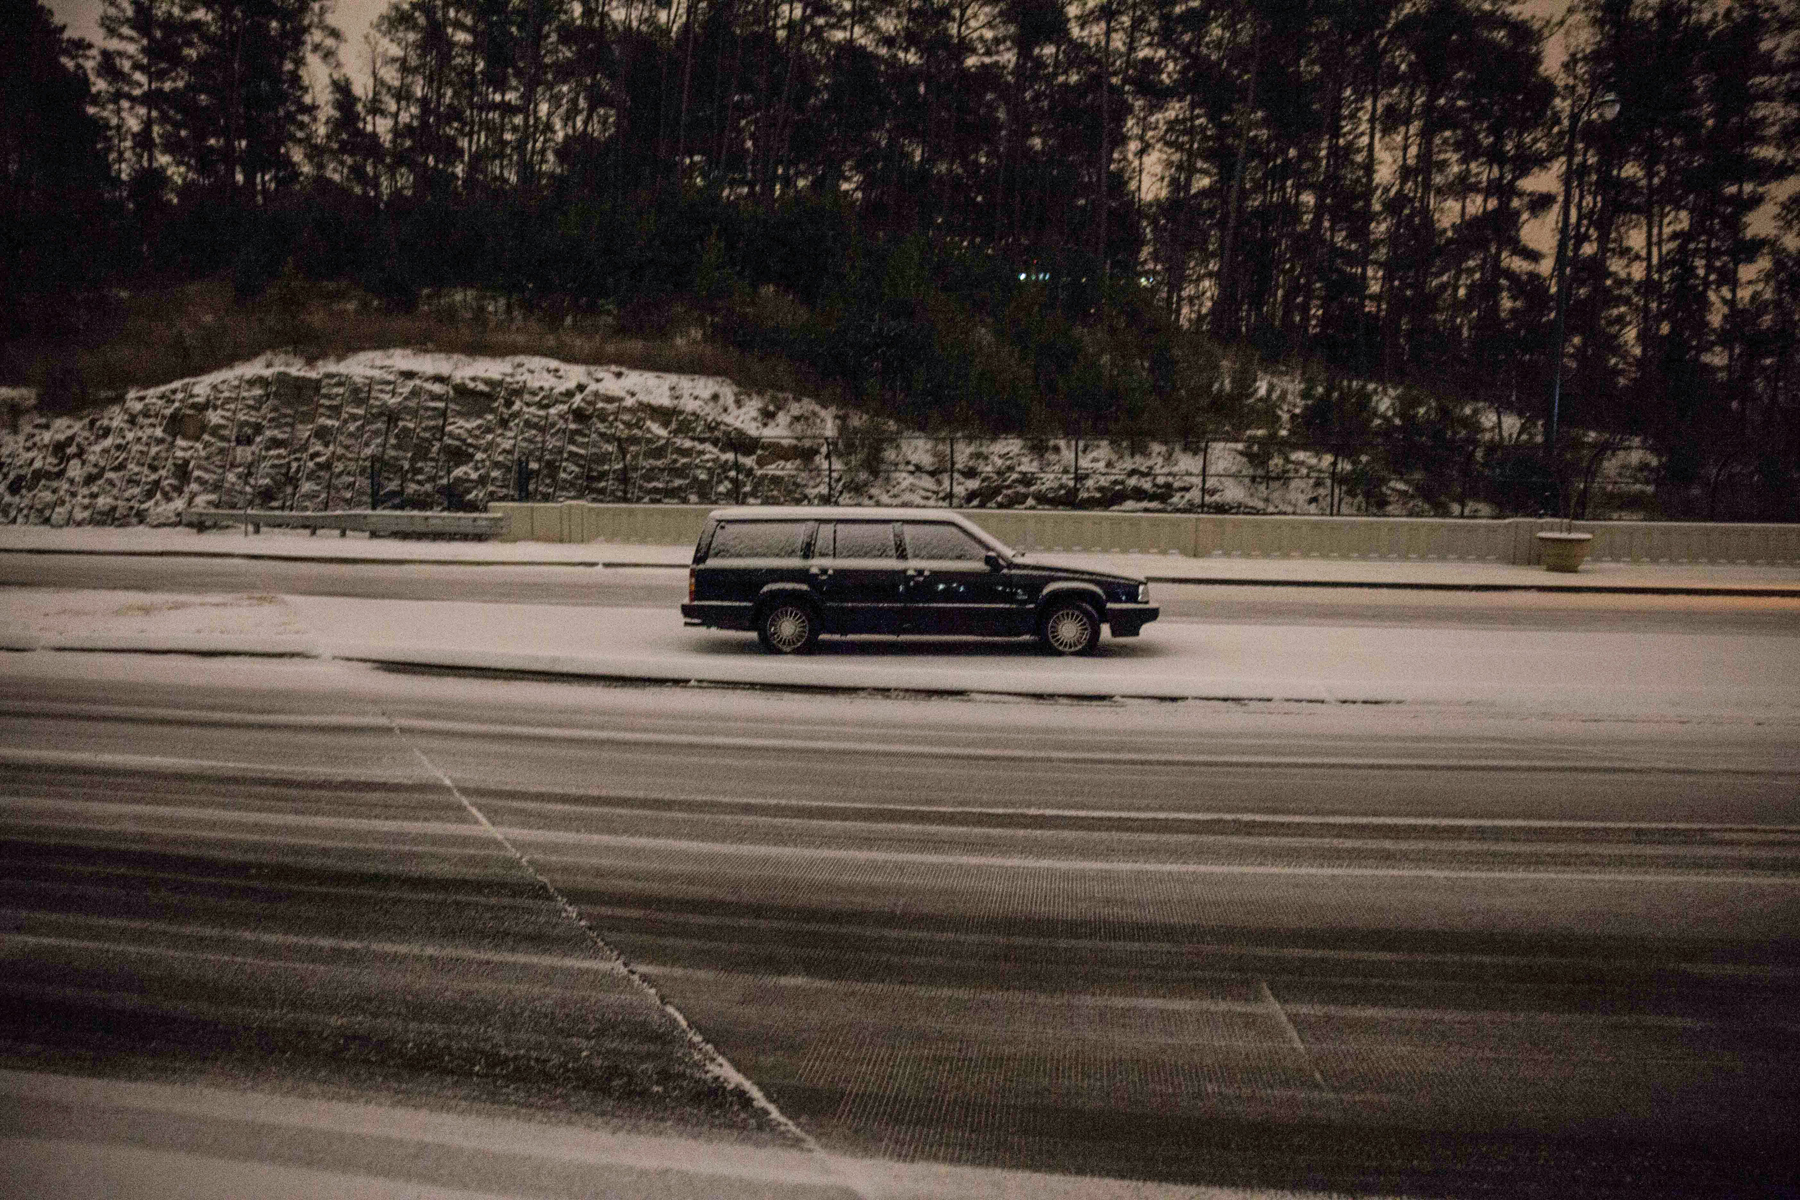 A car sits abandoned on Peachtree Center Parkway, Tuesday evening, Jan. 28, 2014, in Dunwoody, Ga.